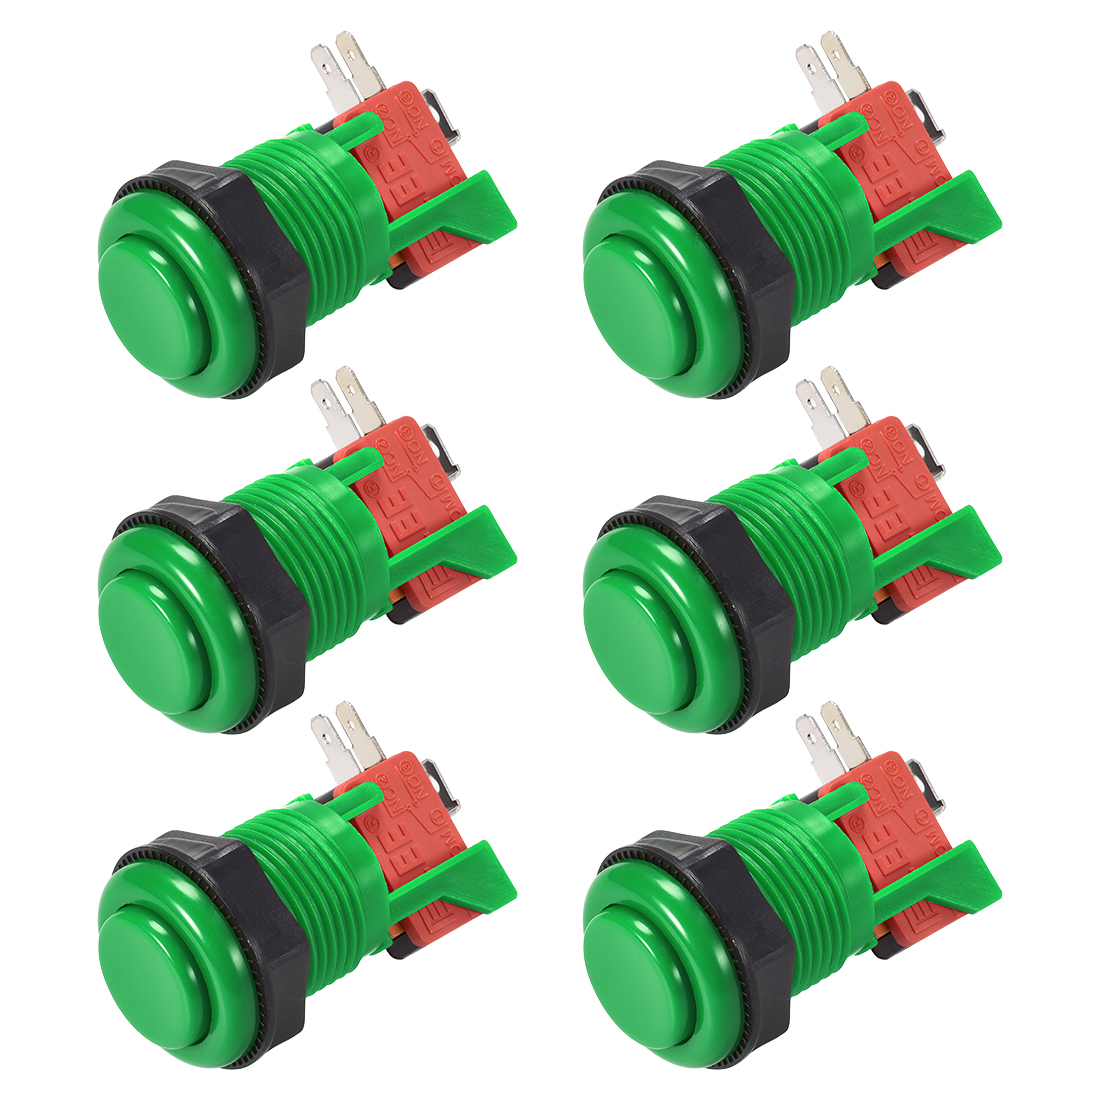 27mm Mounting Momentary Game Push Button Switch with Micro switch Green 6pcs